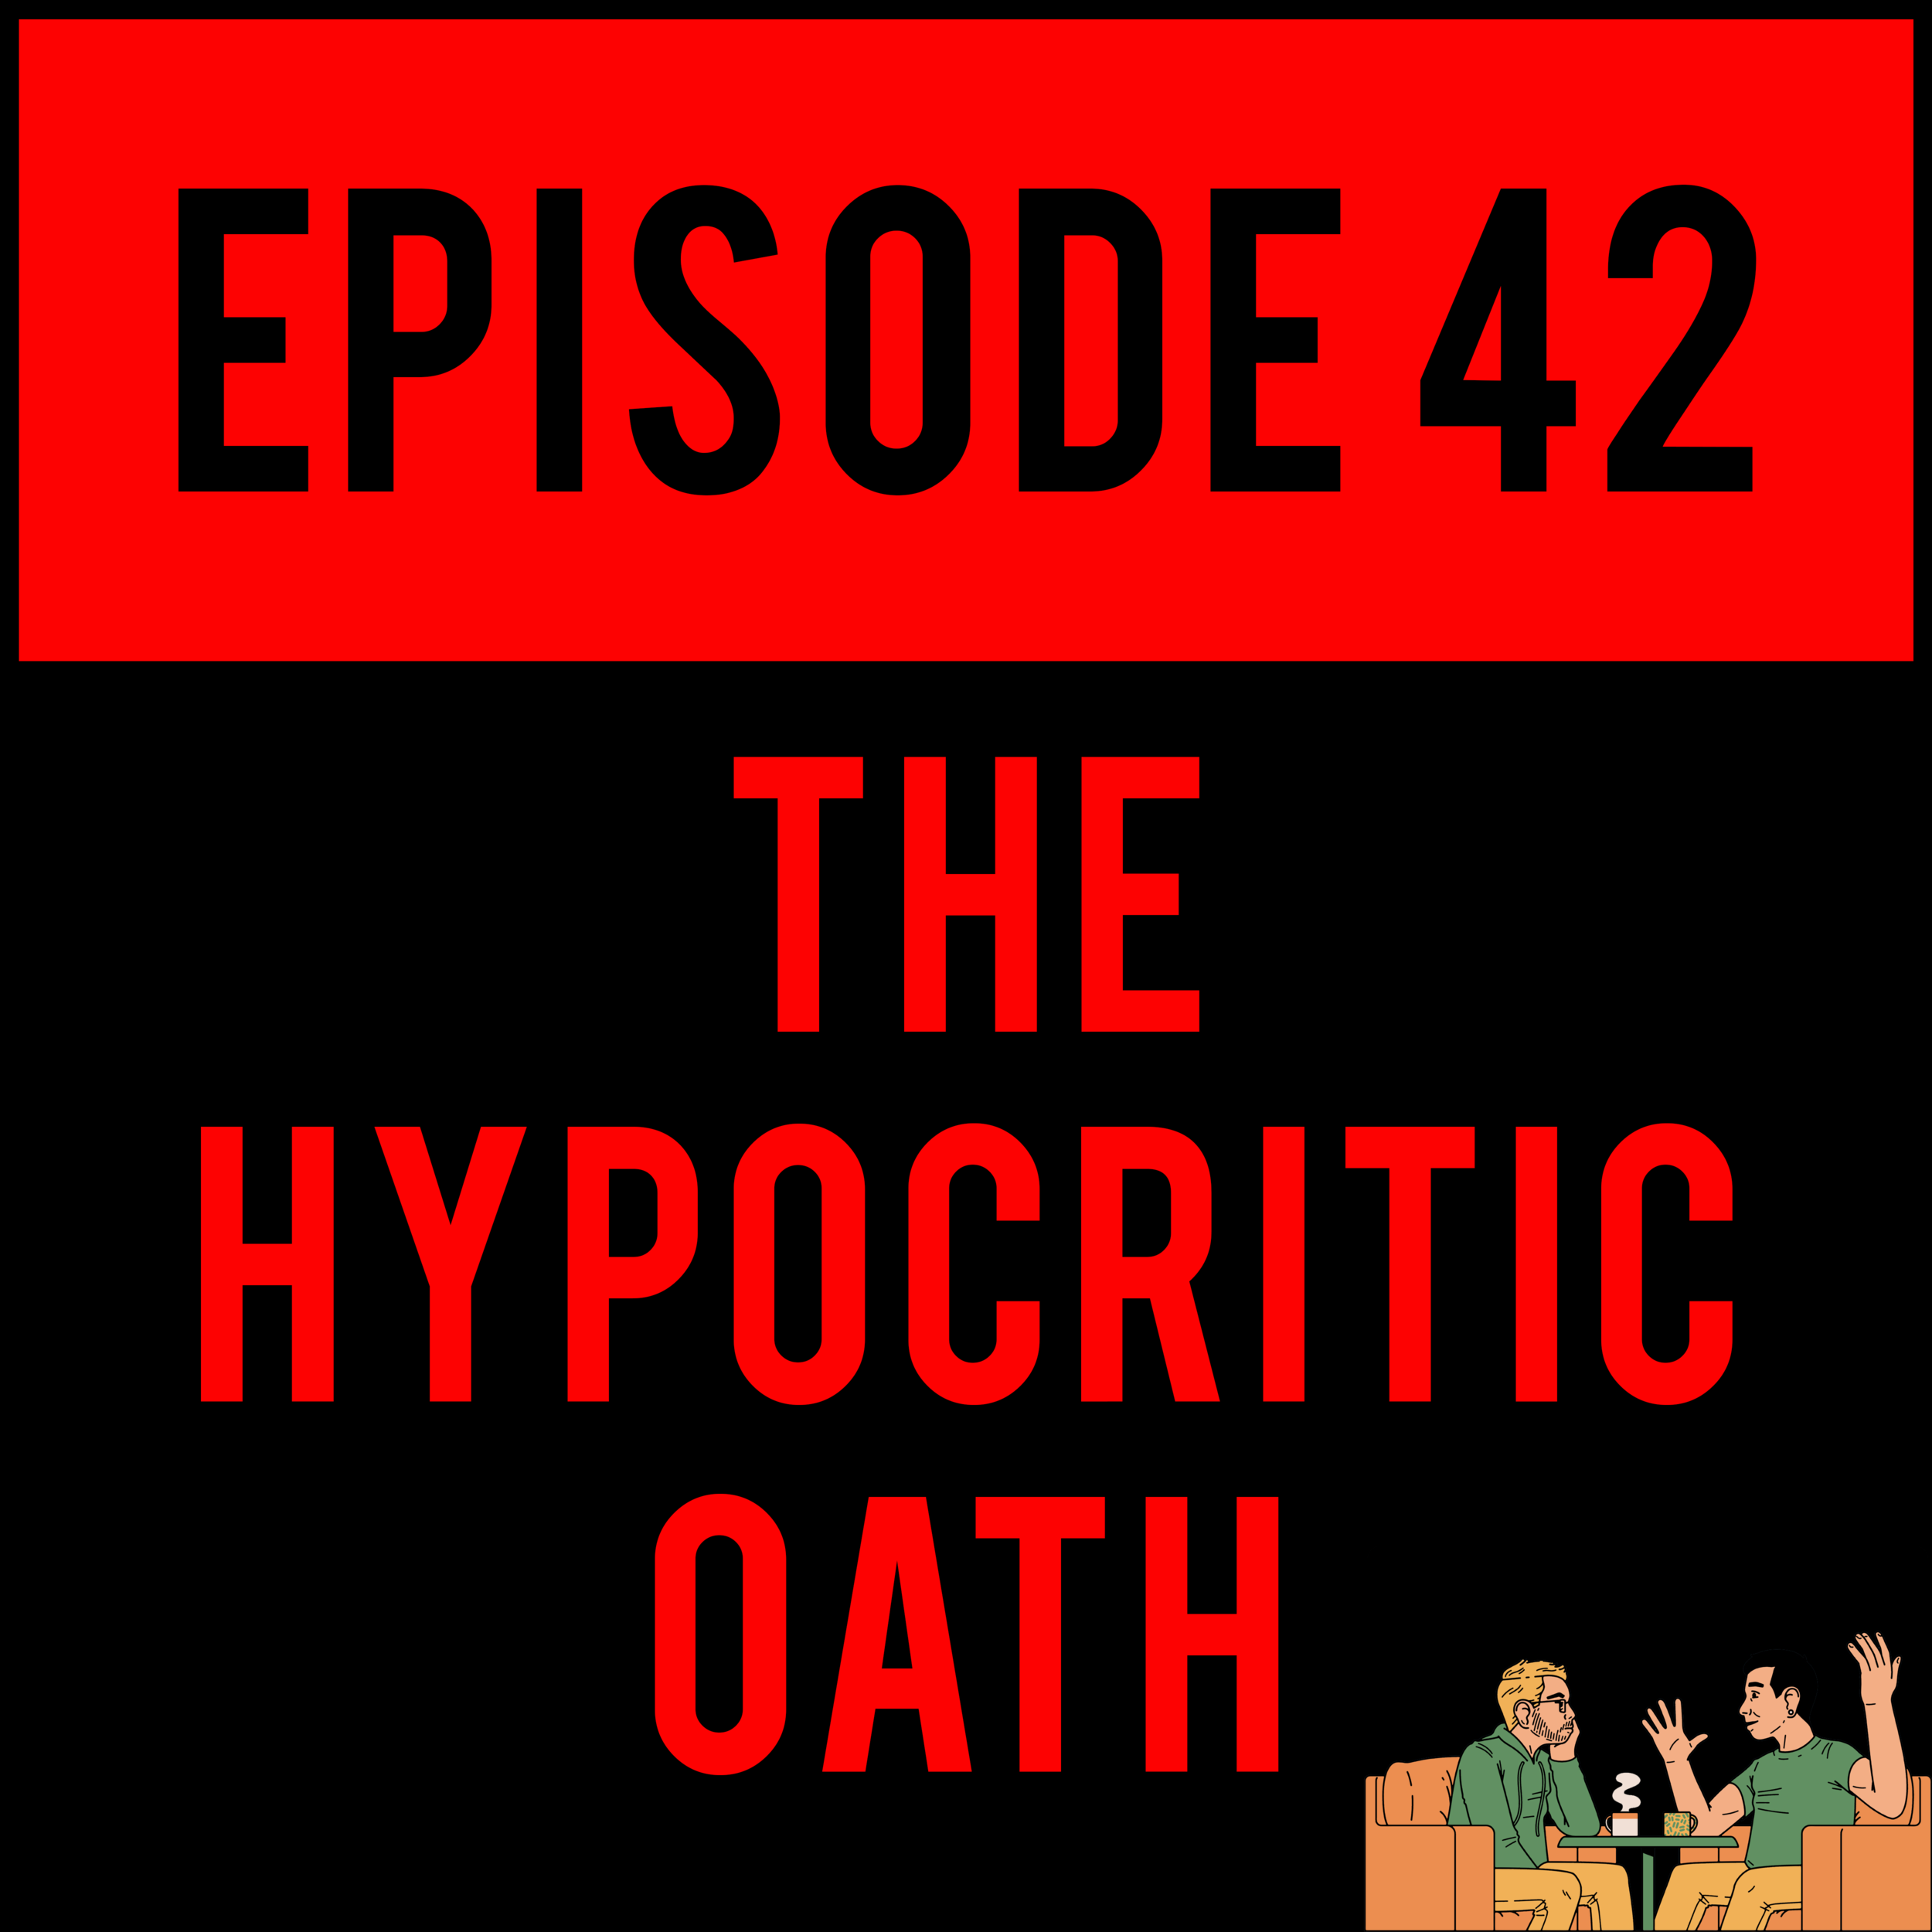 EPISODE 42 - The Upright Citizen's Brigadeand rosacea have incurred our wrath on this week's episode! Suck down THE HYPOCRITIC OATH - EPISODE 42 before it's all gone.